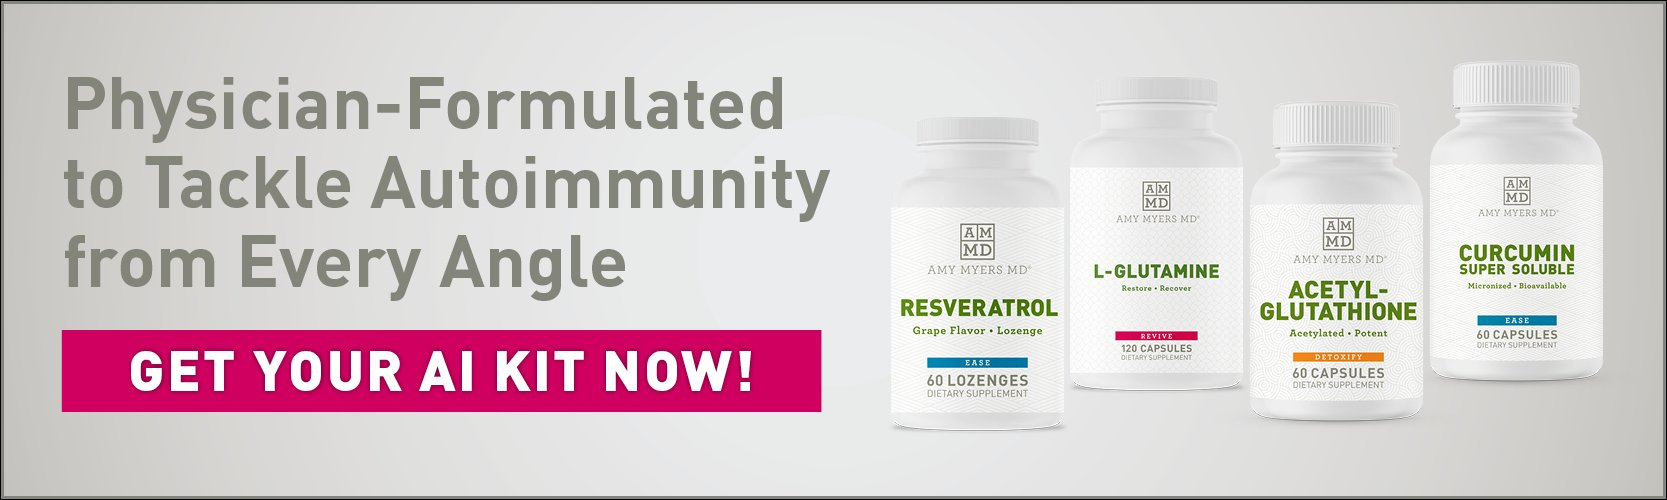 Physician-formulated to tackle autoimmunity from every angle. Get your AI Kit now!